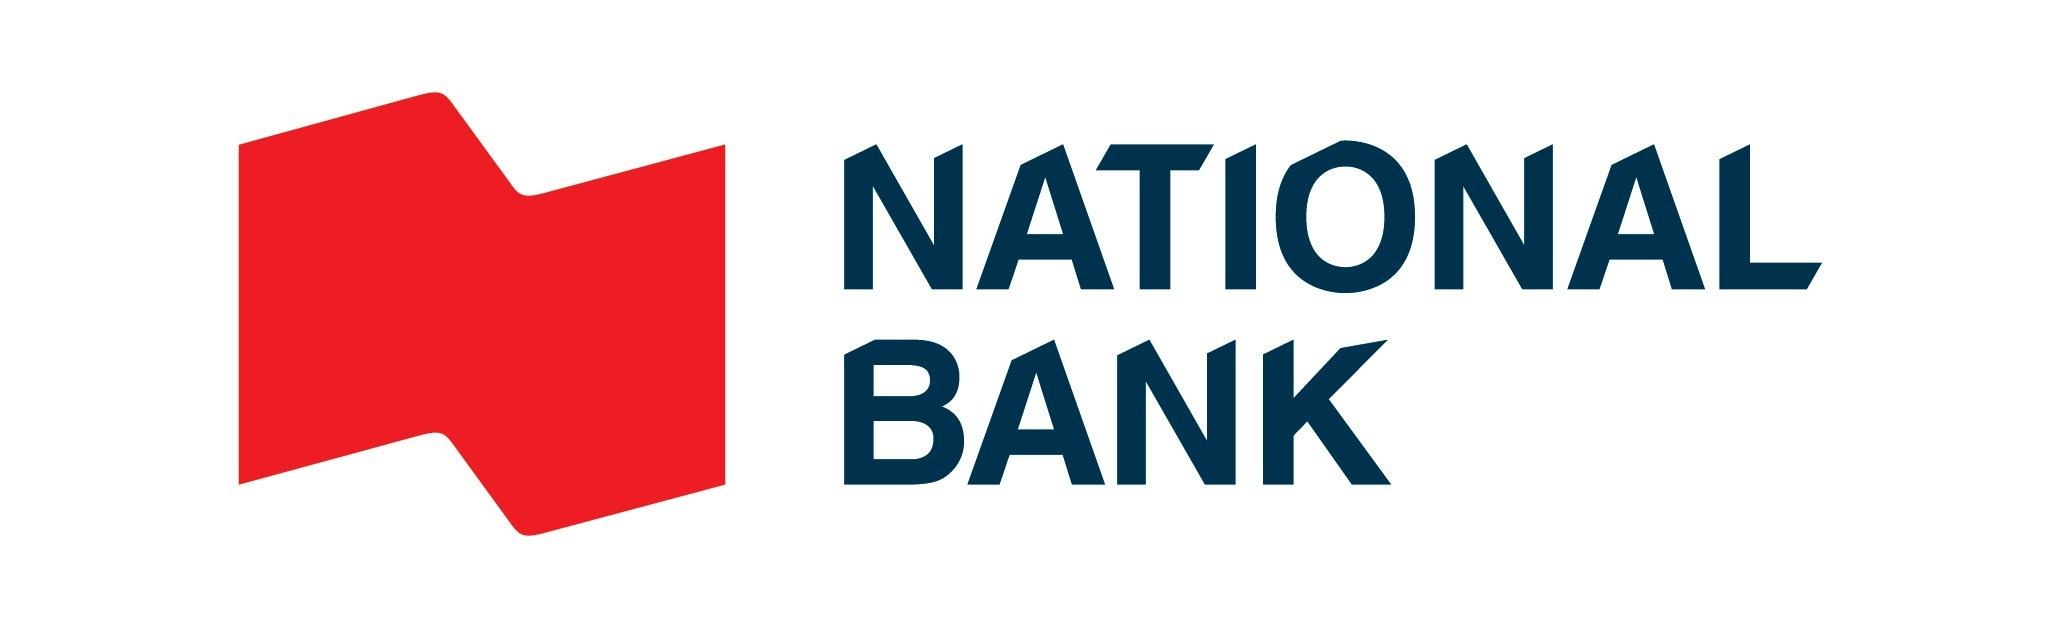 National_Bank_of_Canada_National_Bank_and_CAA_Qu_bec_Join_Forces.jpg